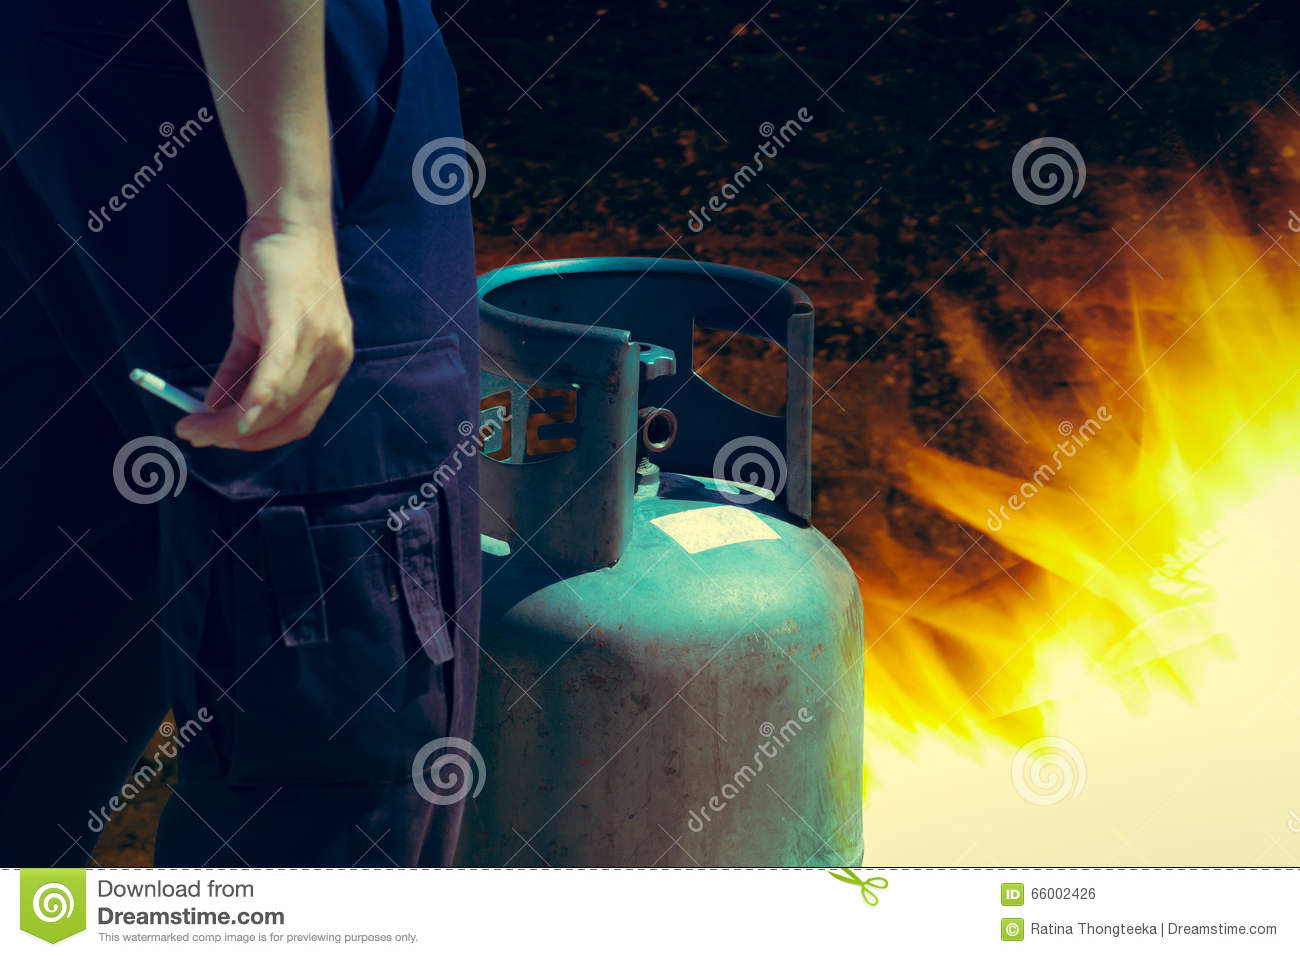 Cigarette in hand near gas tank cylinder can ignition of flammable, safety concept